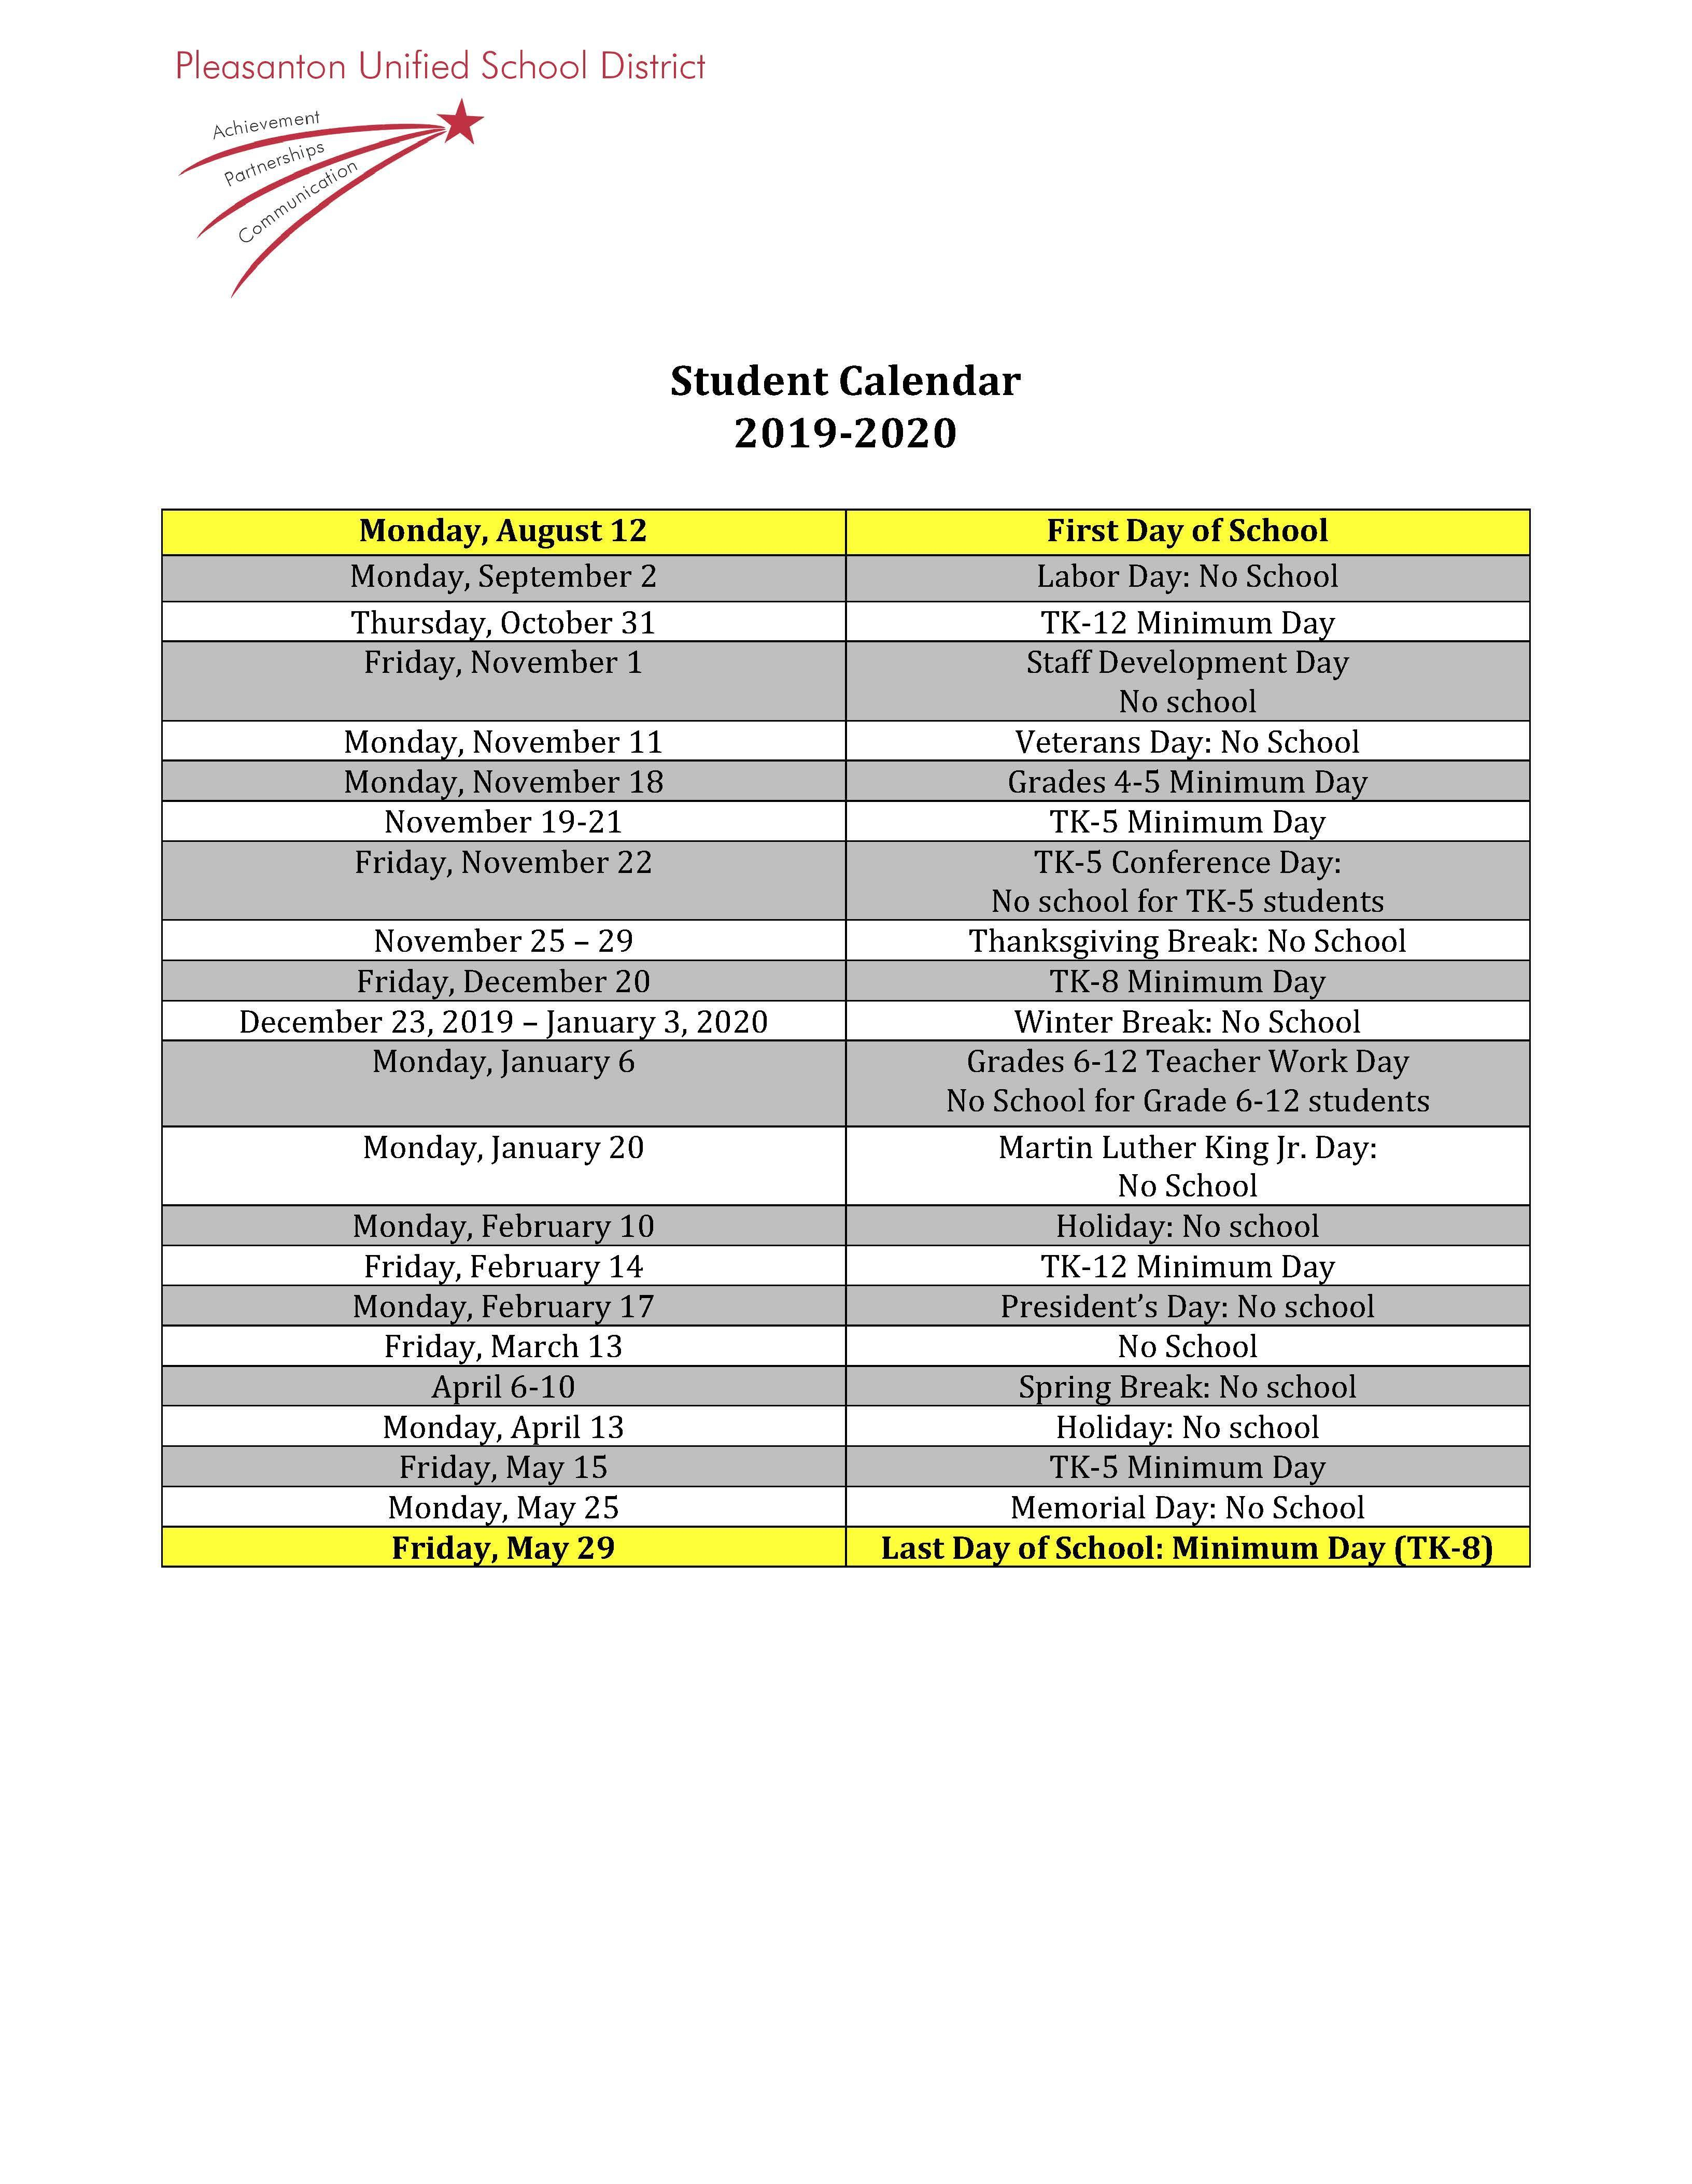 Calendars - Miscellaneous - Pleasanton Unified School District inside 2020 Calendar Sunday Through Saturday